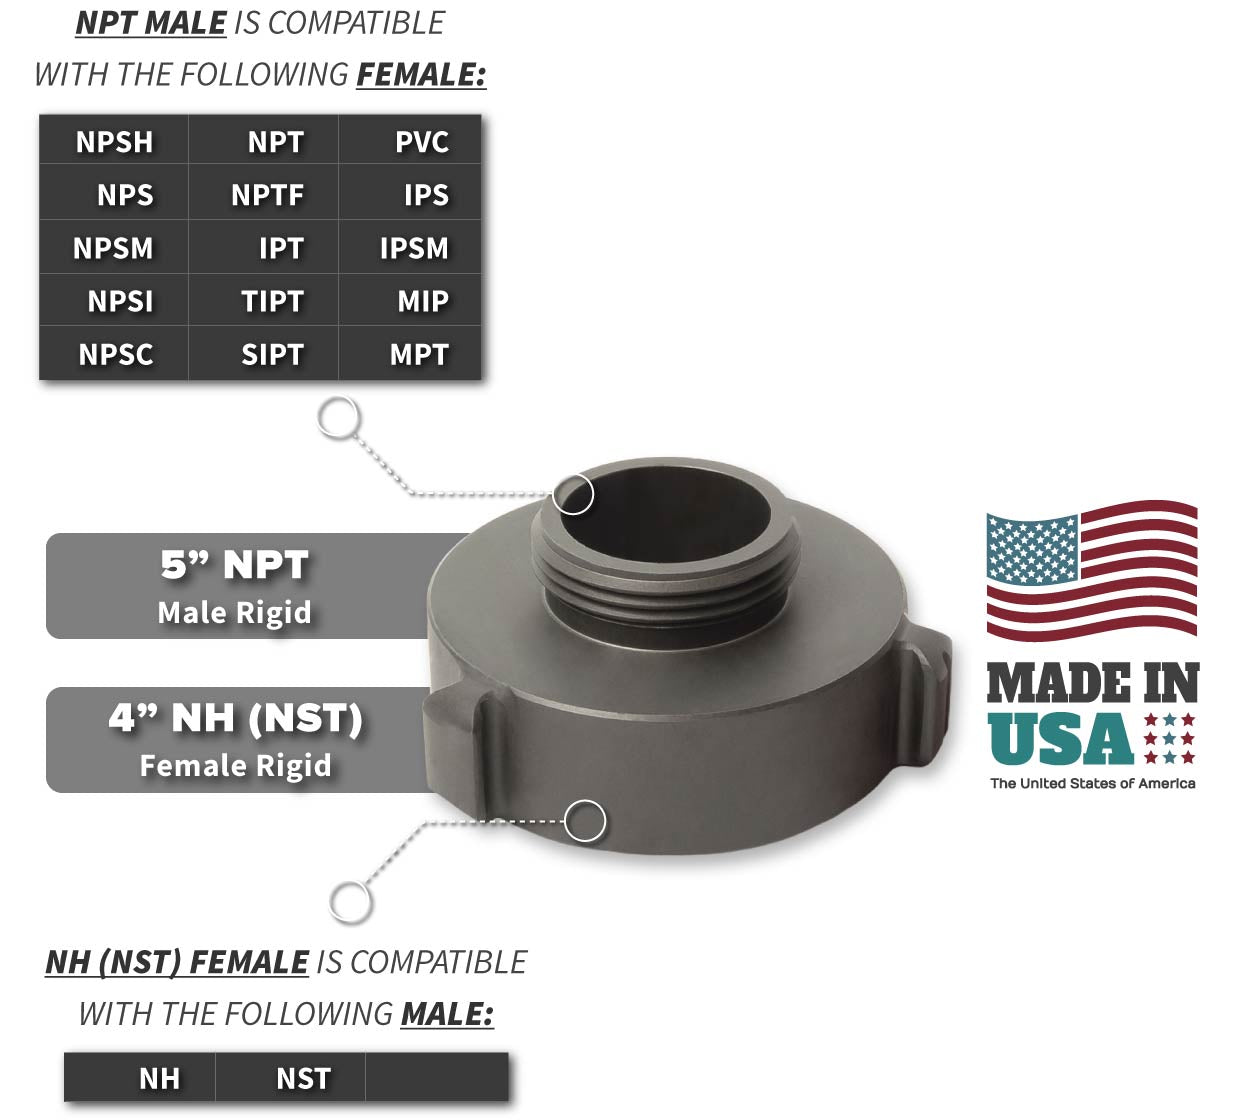 4 Inch NH-NST Female x 5 Inch NPT Male Compatibility Thread Chart